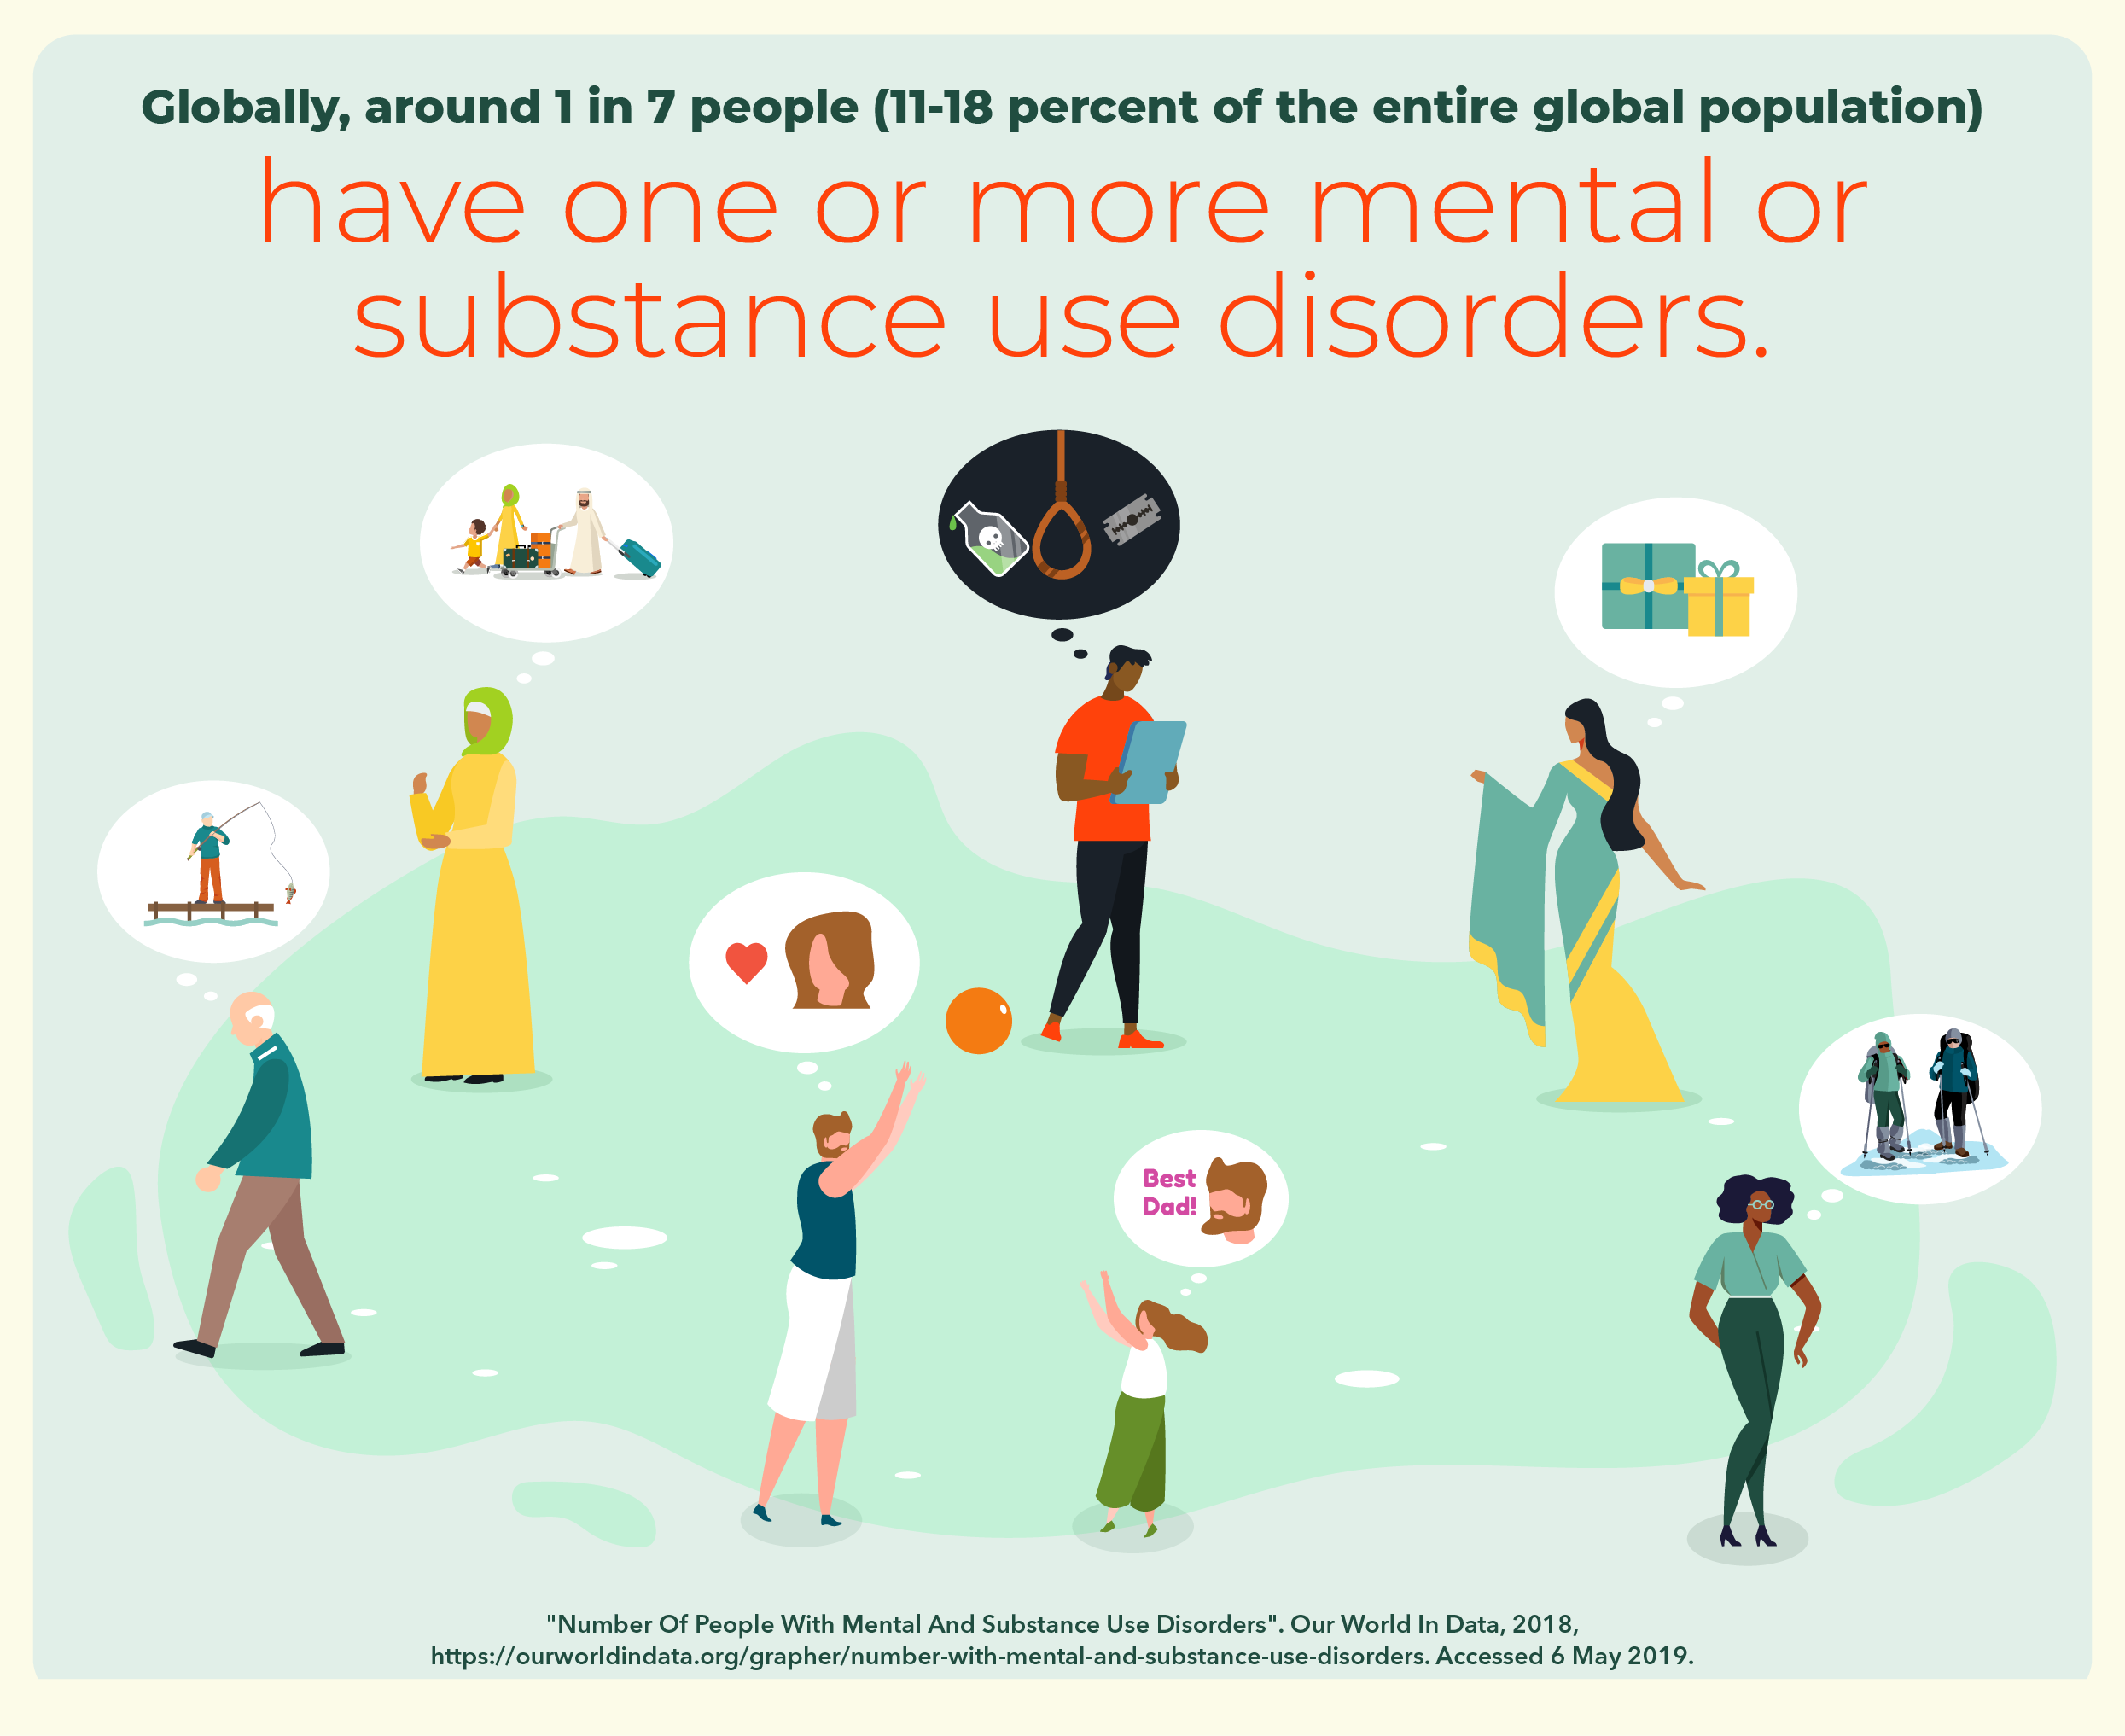 1 in 7 people in the global population have mental or substance use disorders